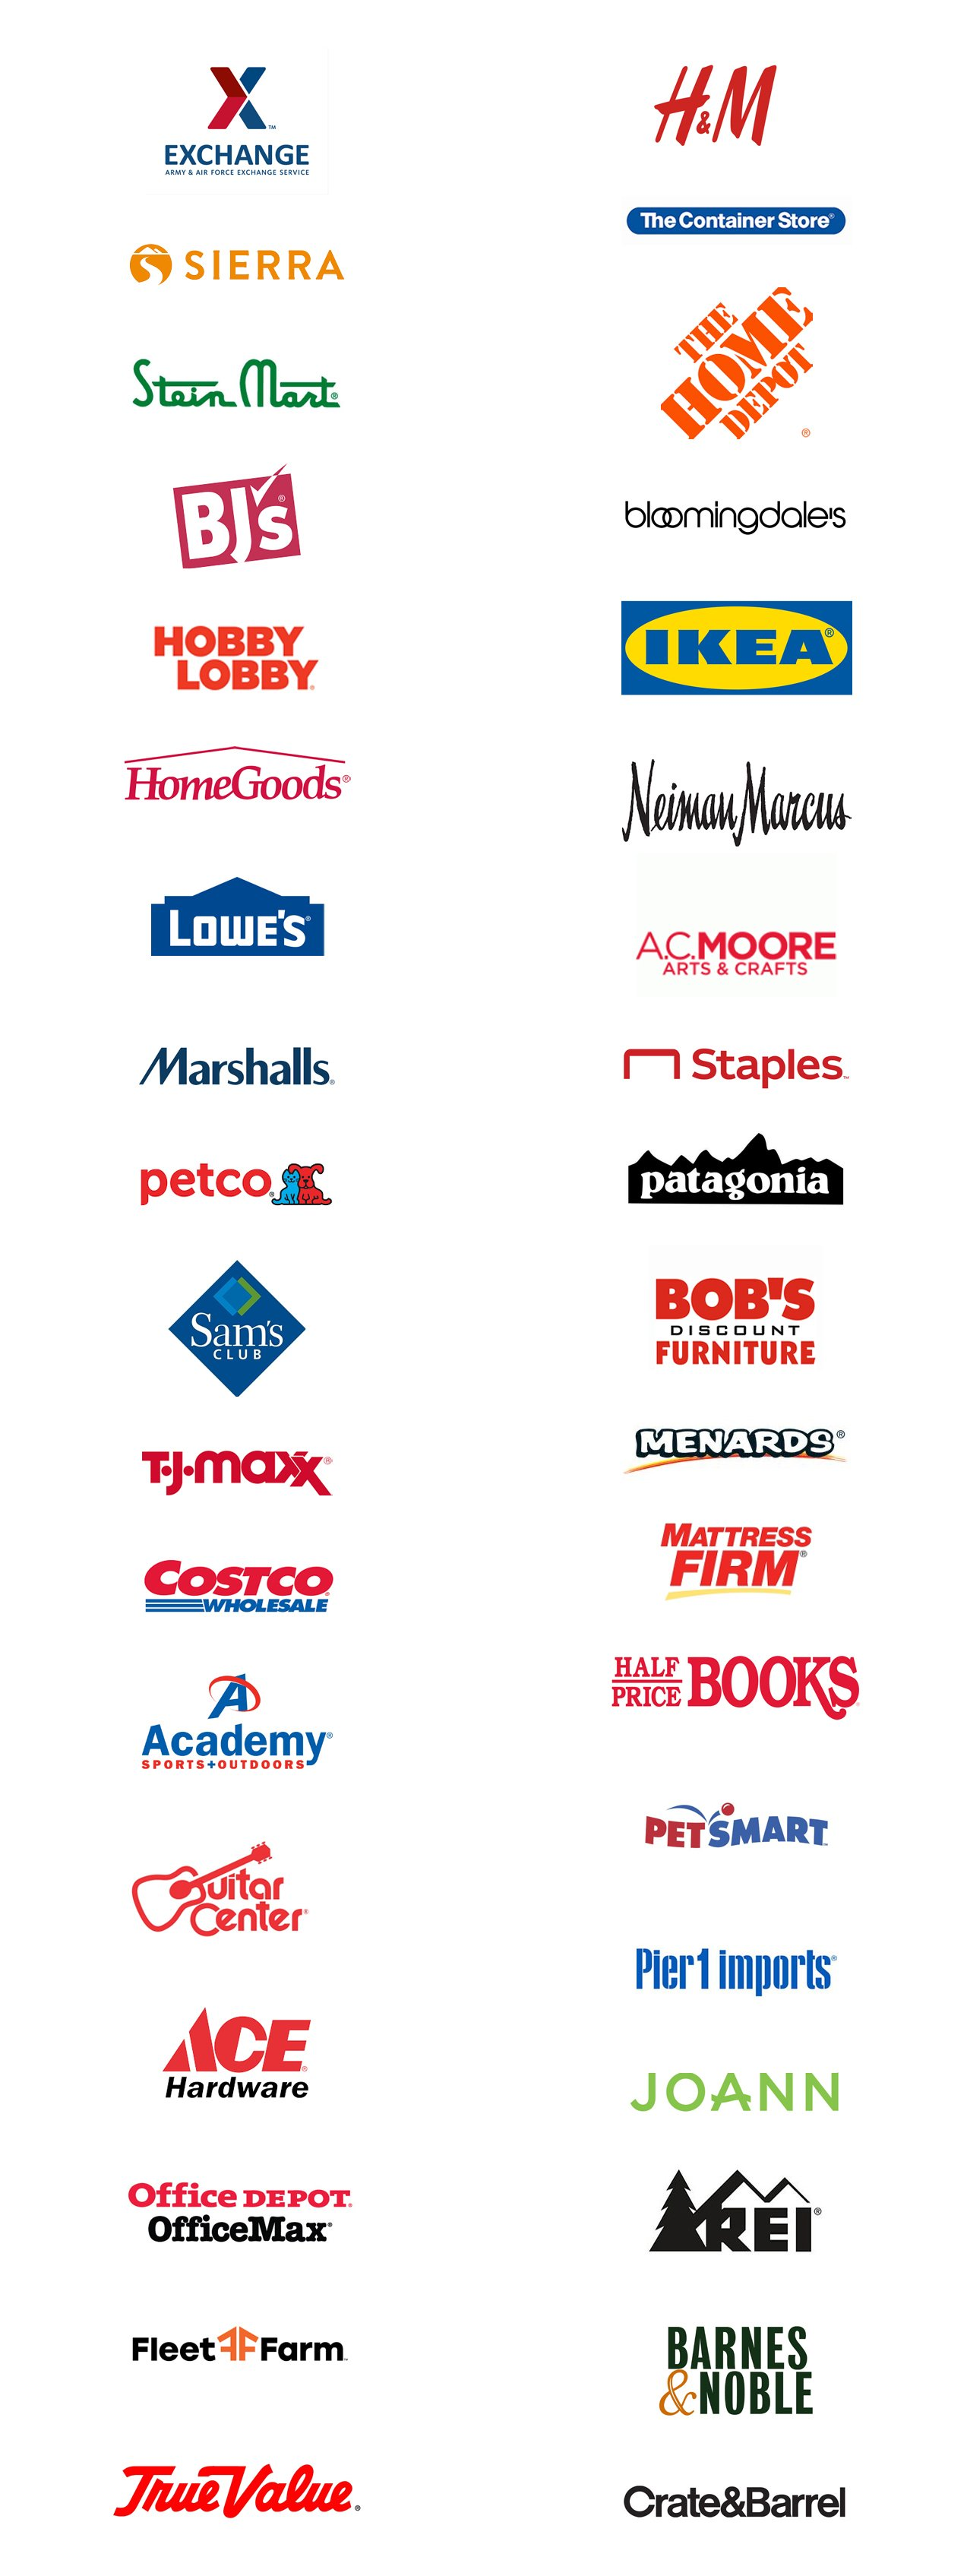 List of stores that will remain closed during Thanksgiving.